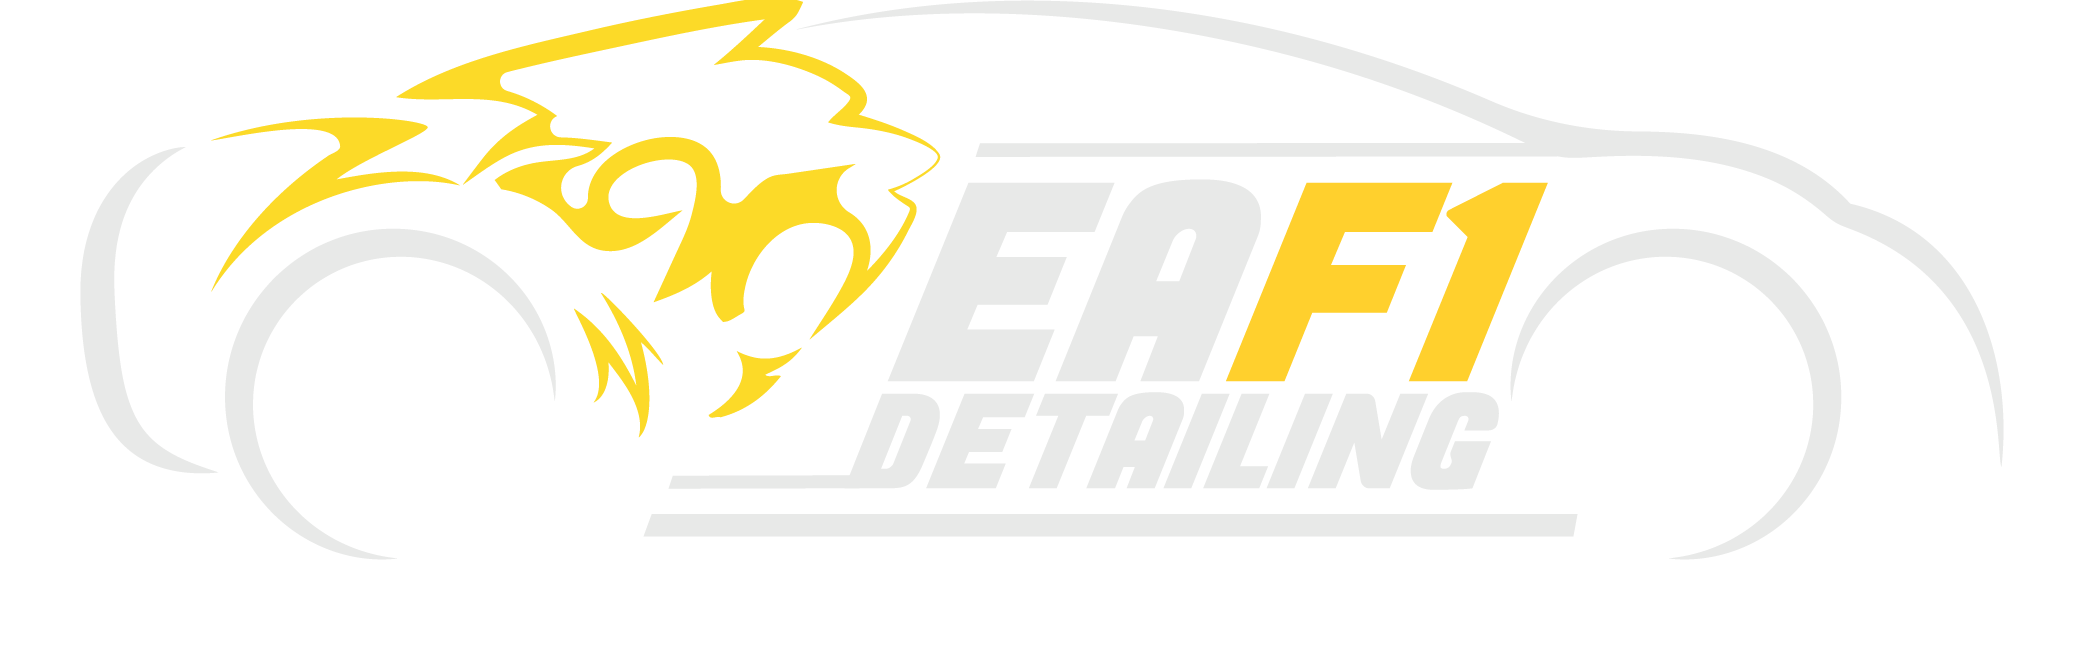 EURO AMERICA F1 DETAILING CORP